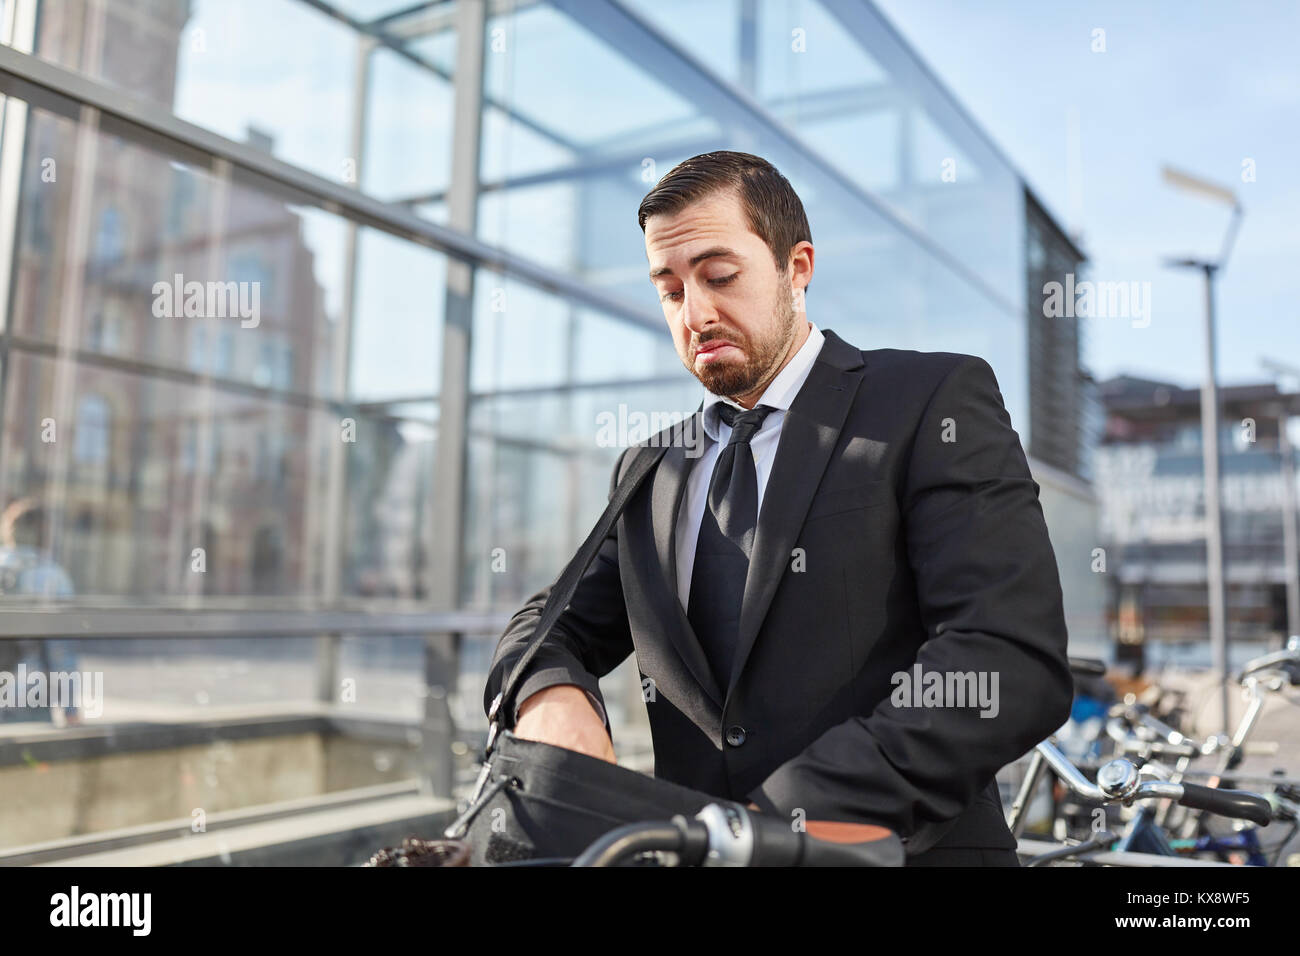 Businessman as a commuter looks frustrated for the bicycle key - Stock Image